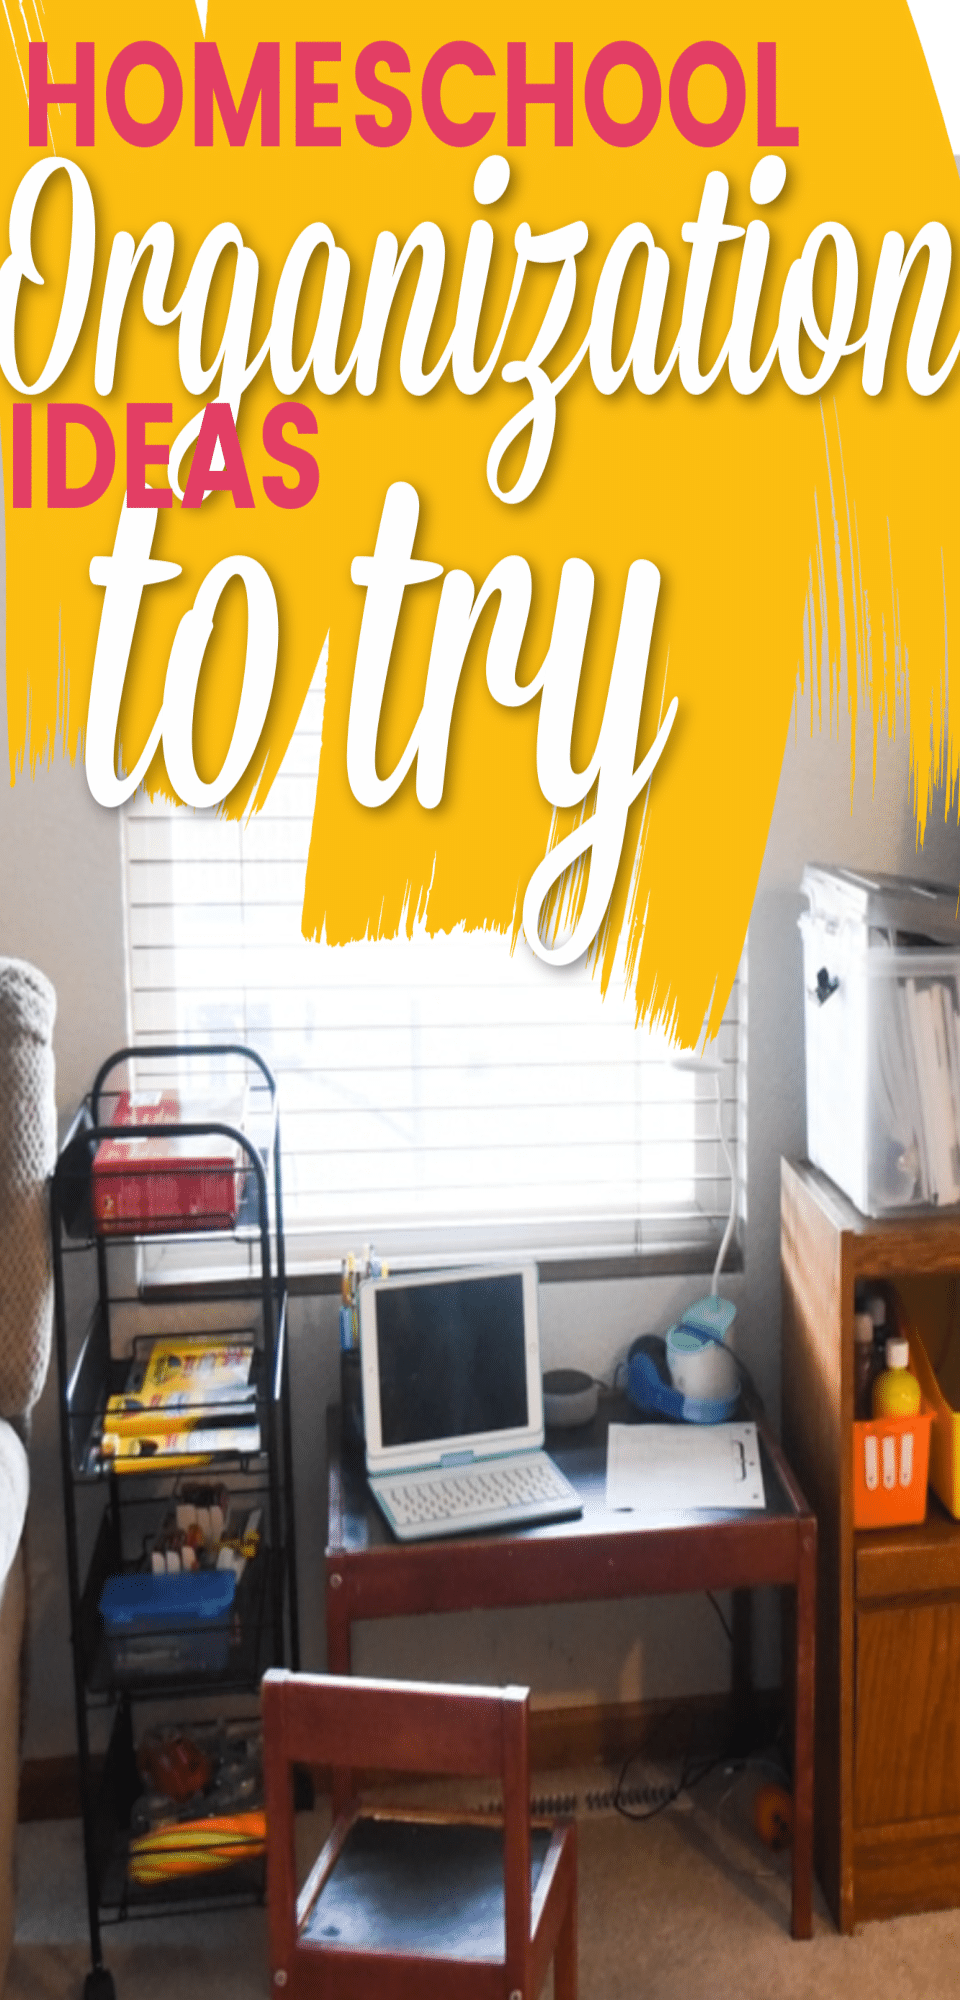 Easy Homeschool Organization Ideas + Free Homeschool Planner via @clarkscondensed